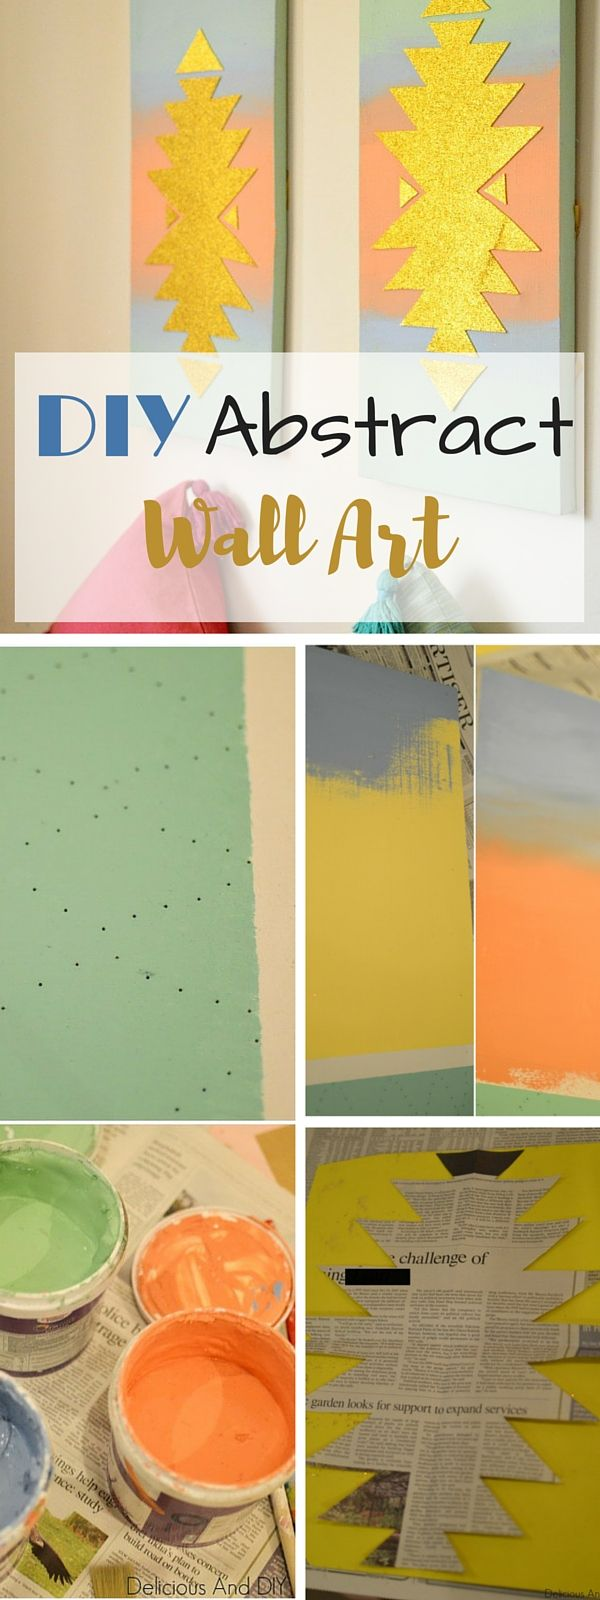 8419 best Share Your Best DIY Projects images on Pinterest | Bee ...